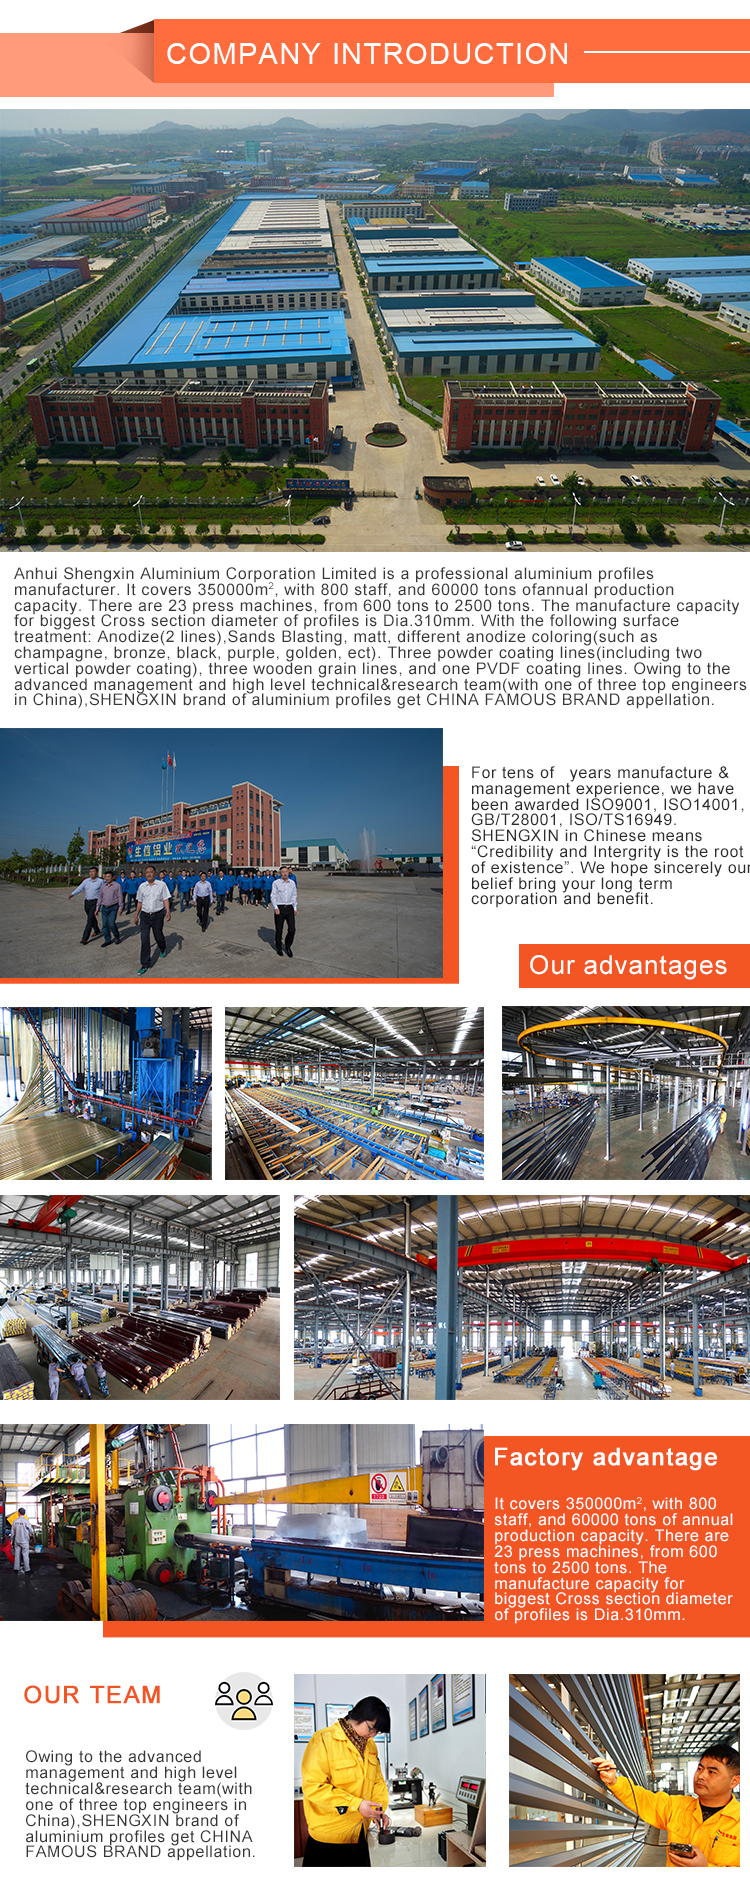 Shengxin New designed high-hardness aluminum profiles for sliding windows in architectural Construction